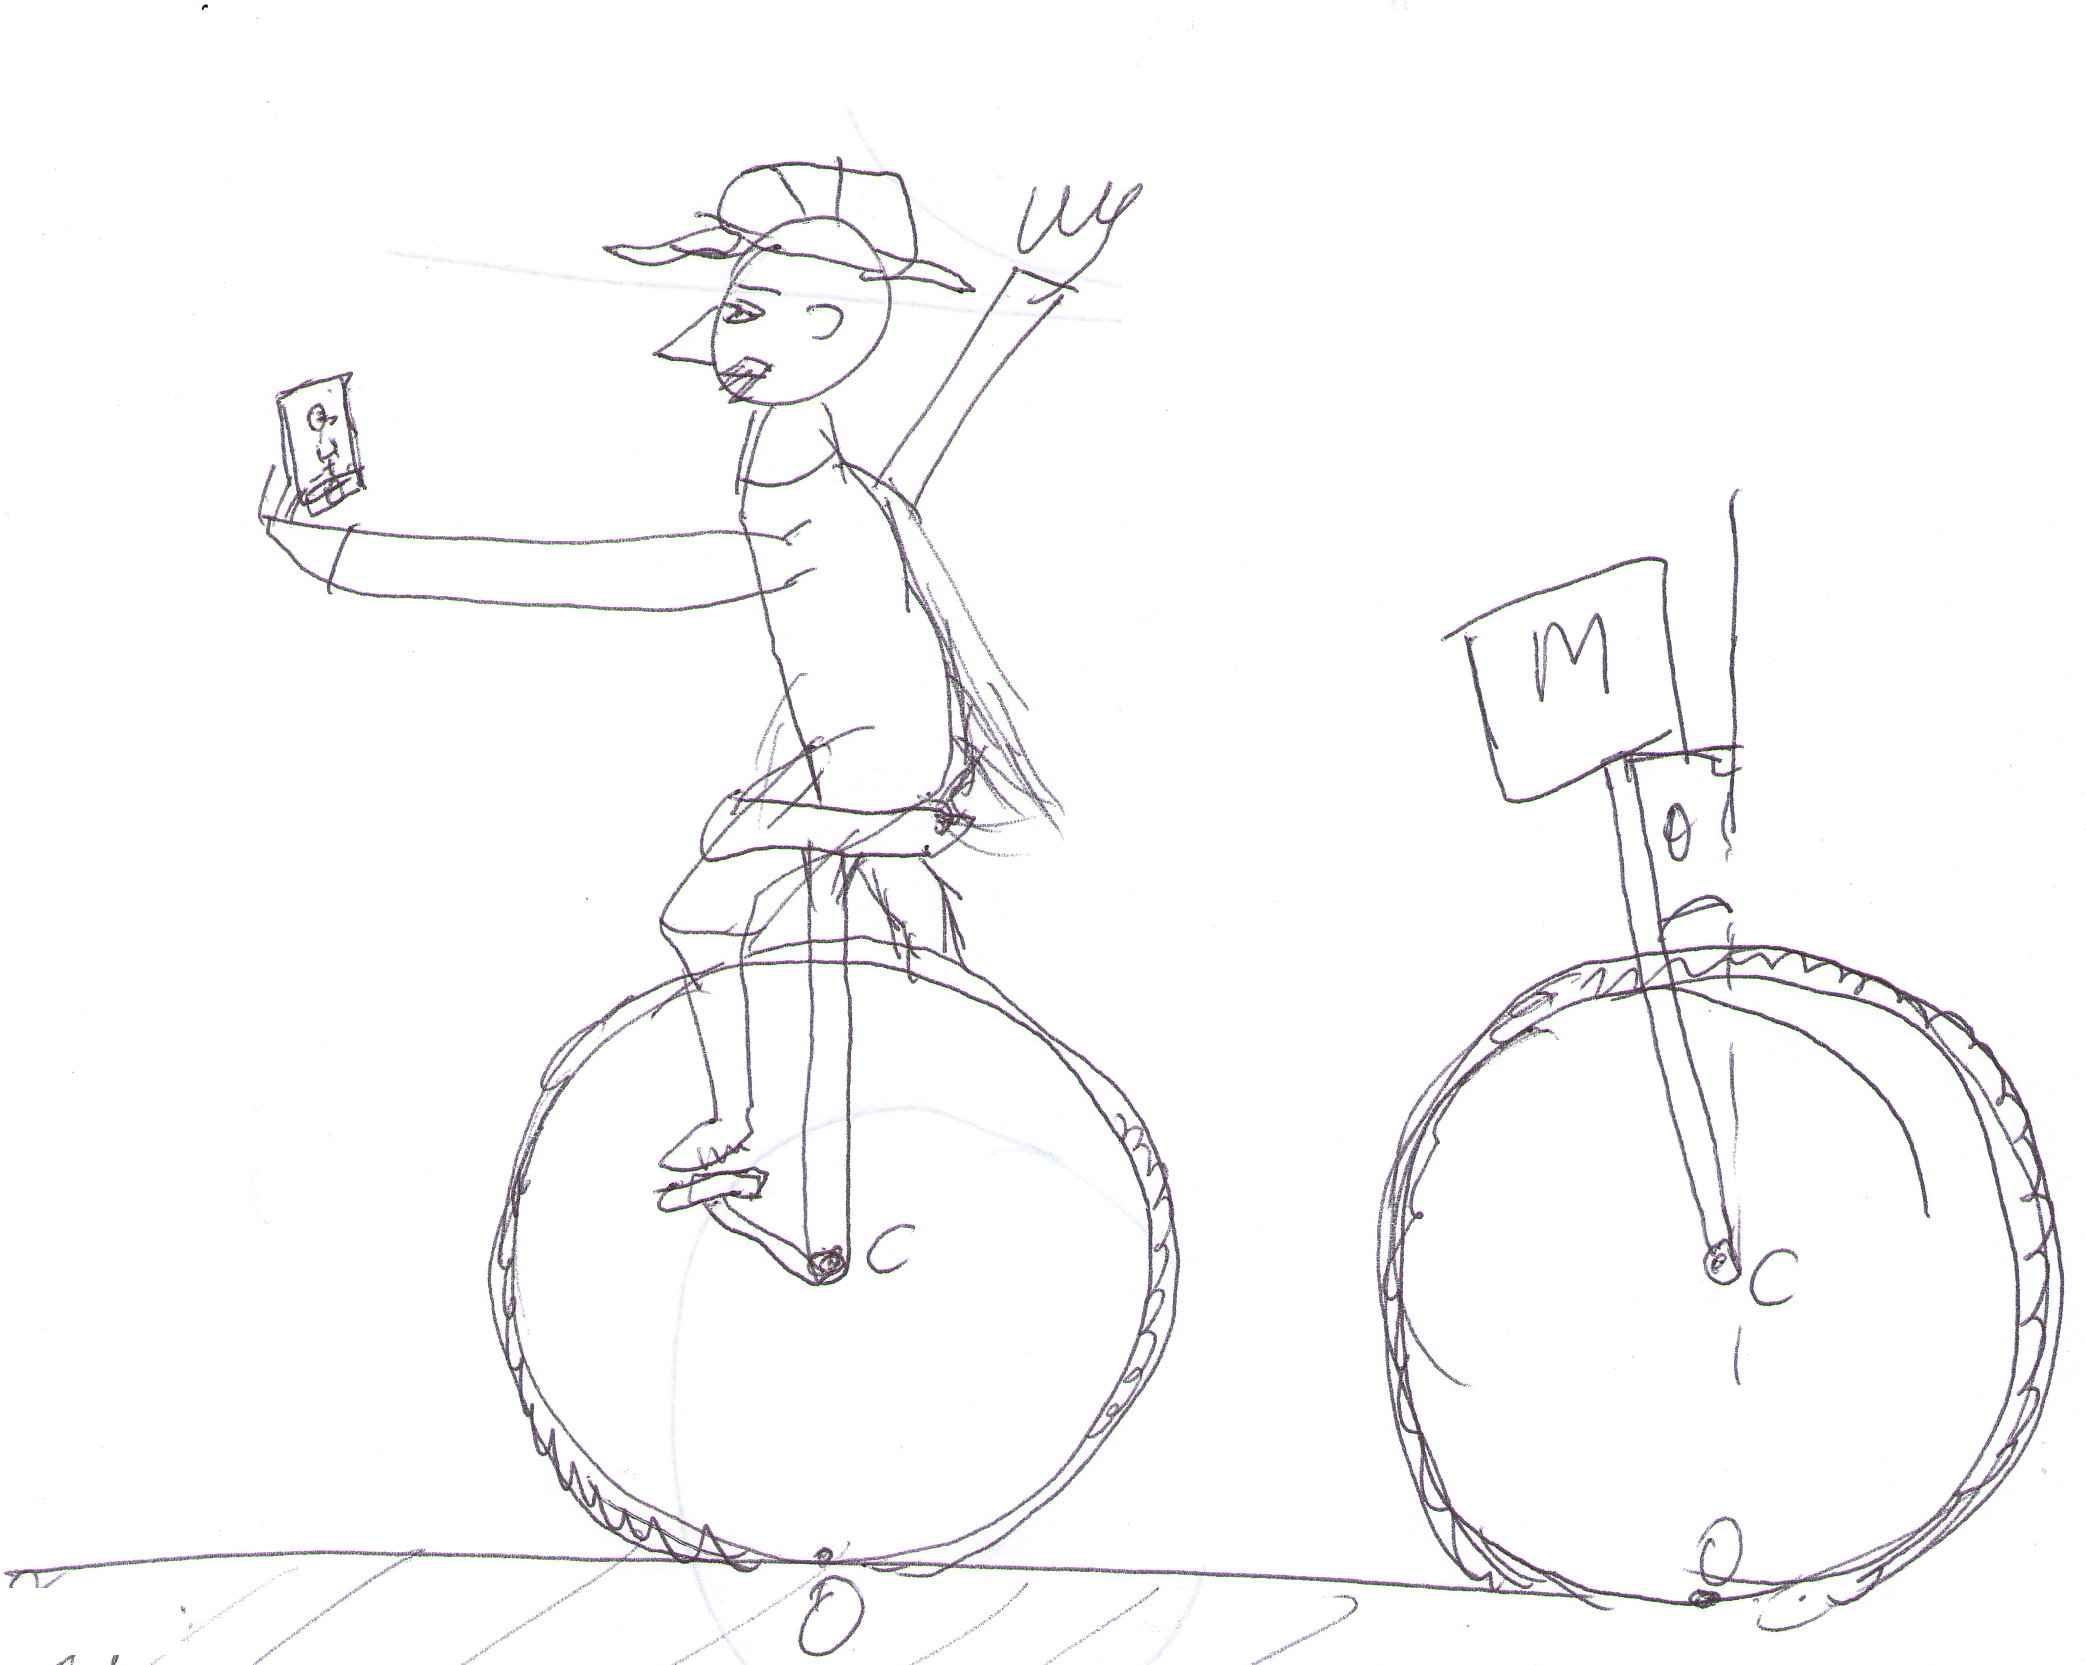 unicycle-person.jpg